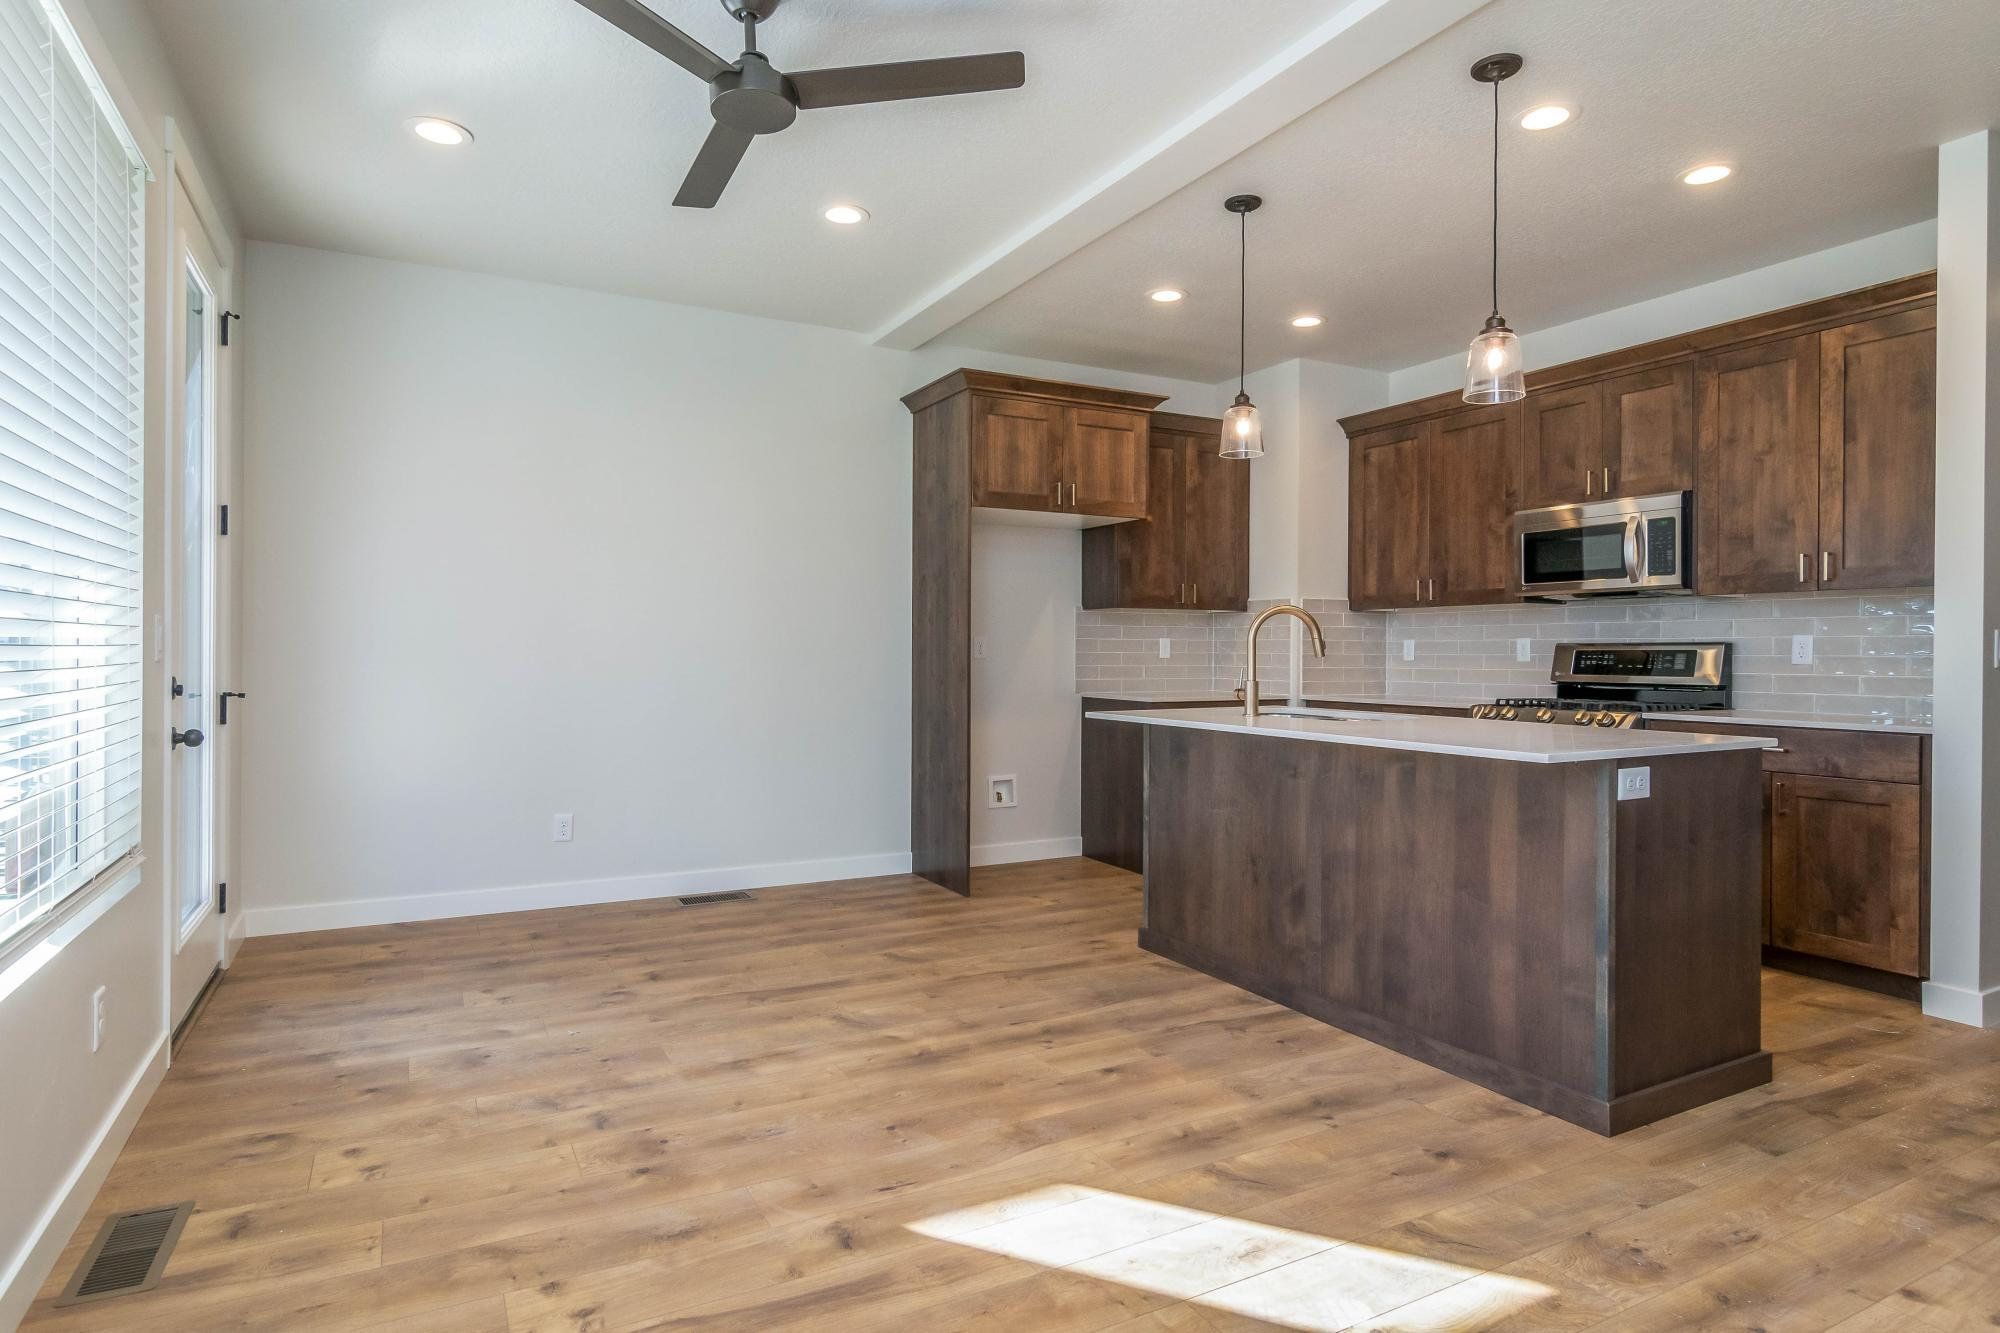 Kitchen featured in the 11003 S Lake Run Rd By Destination Homes in Salt Lake City-Ogden, UT